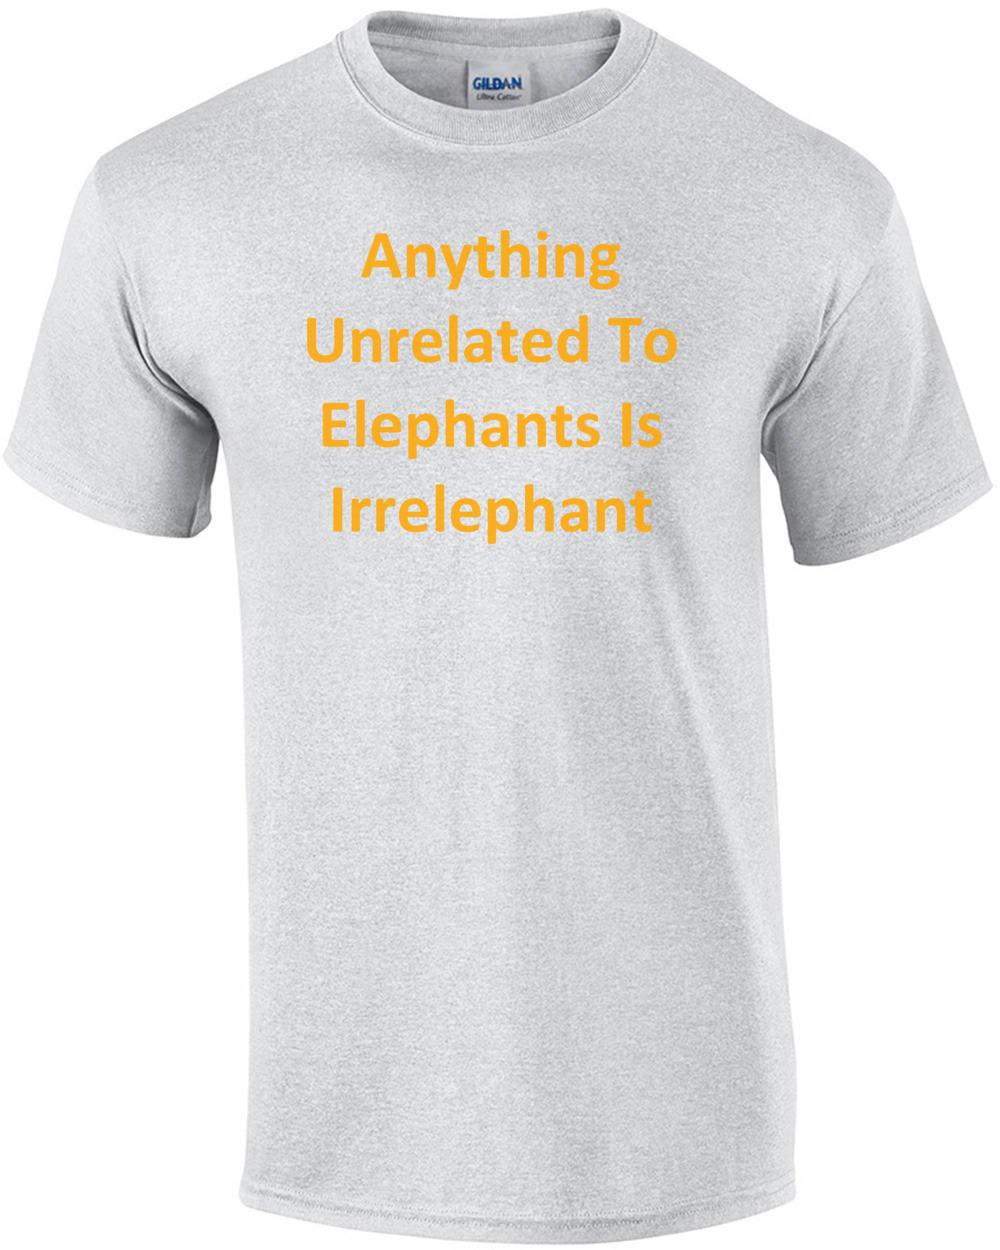 7f167178 Anything Unrelated To Elephants Is Irrelephant T-Shirt